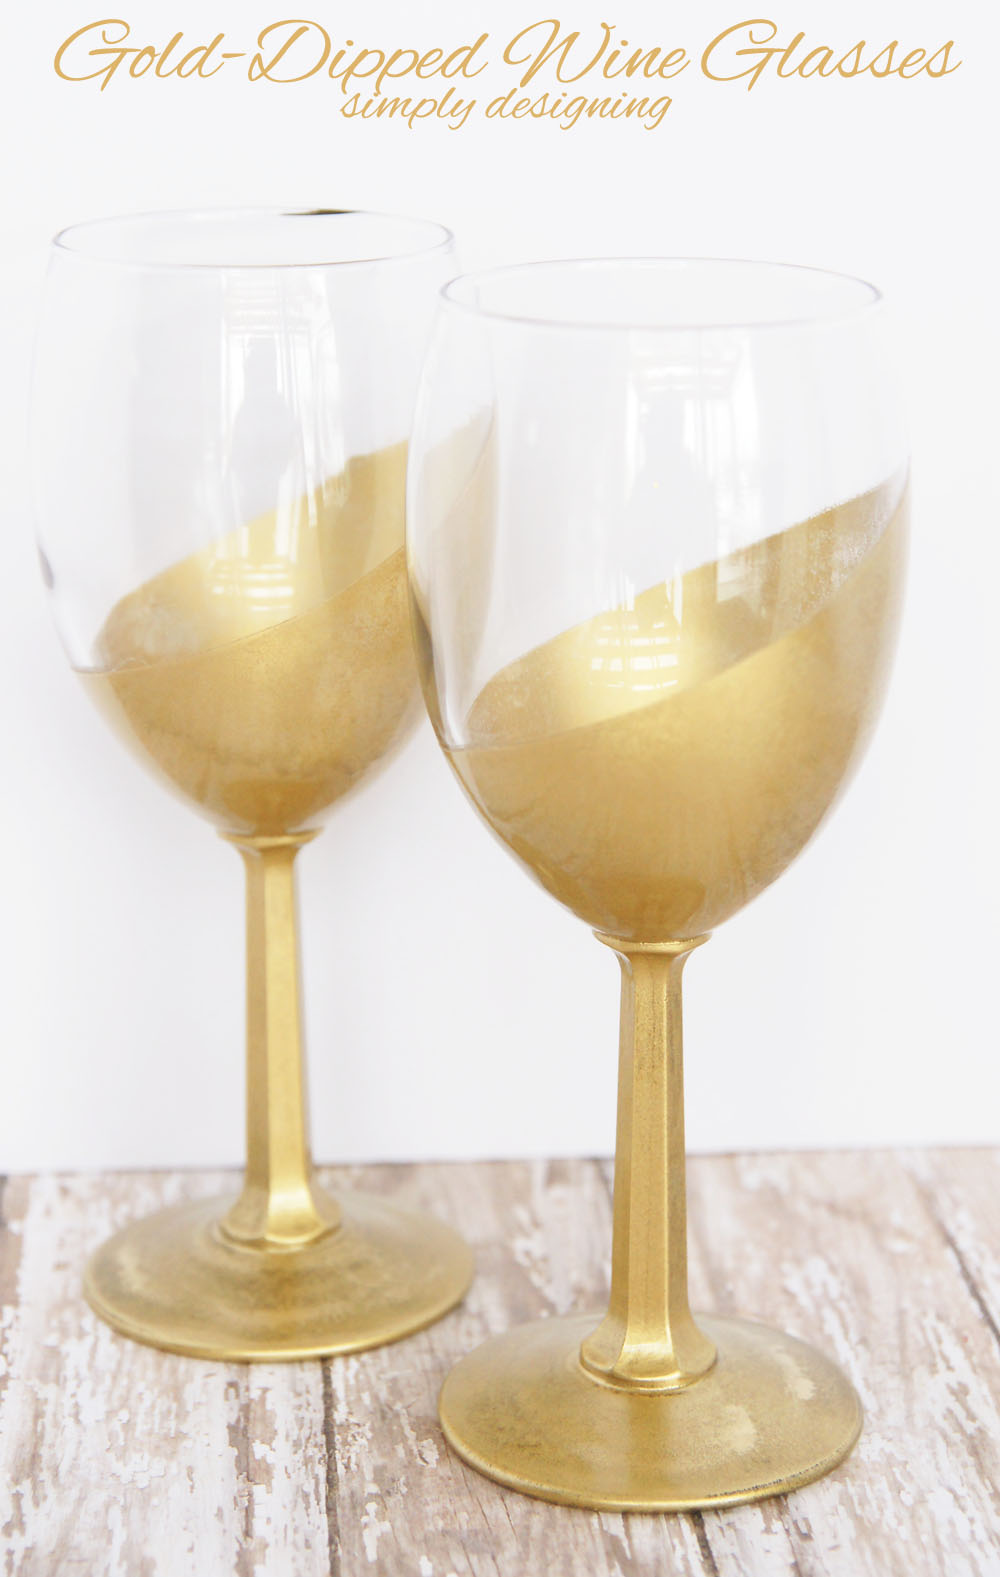 Gold-Dipped Wine Glasses | #gold #golddipped #glasses #diy #craft